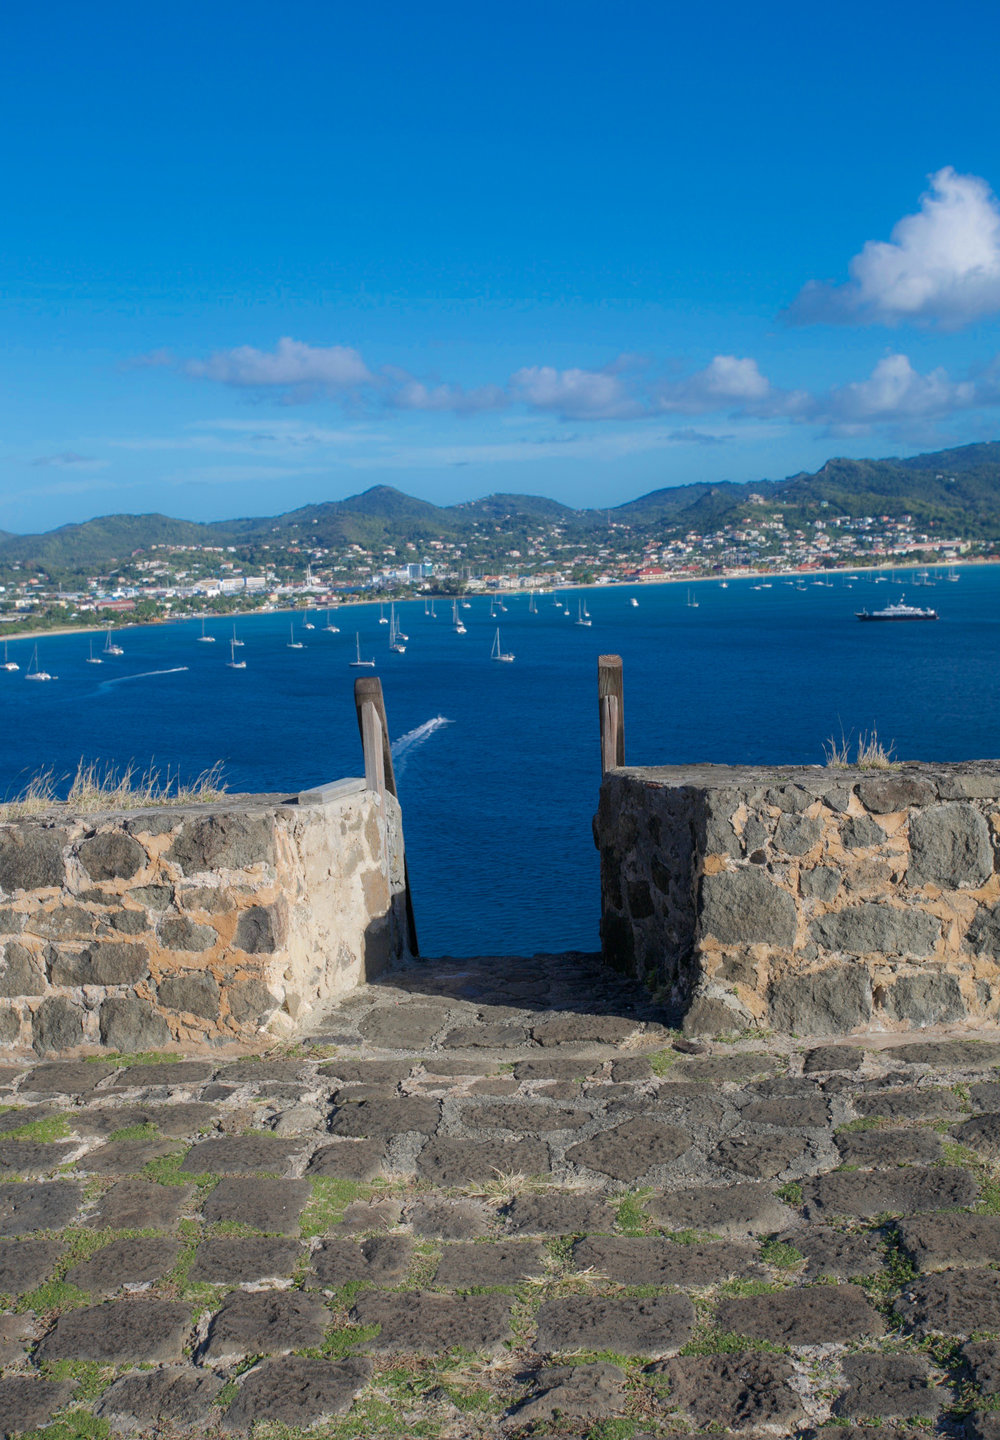 Pigeon Island views at the top of the fort Photography Courtesy of The Aisle Photography